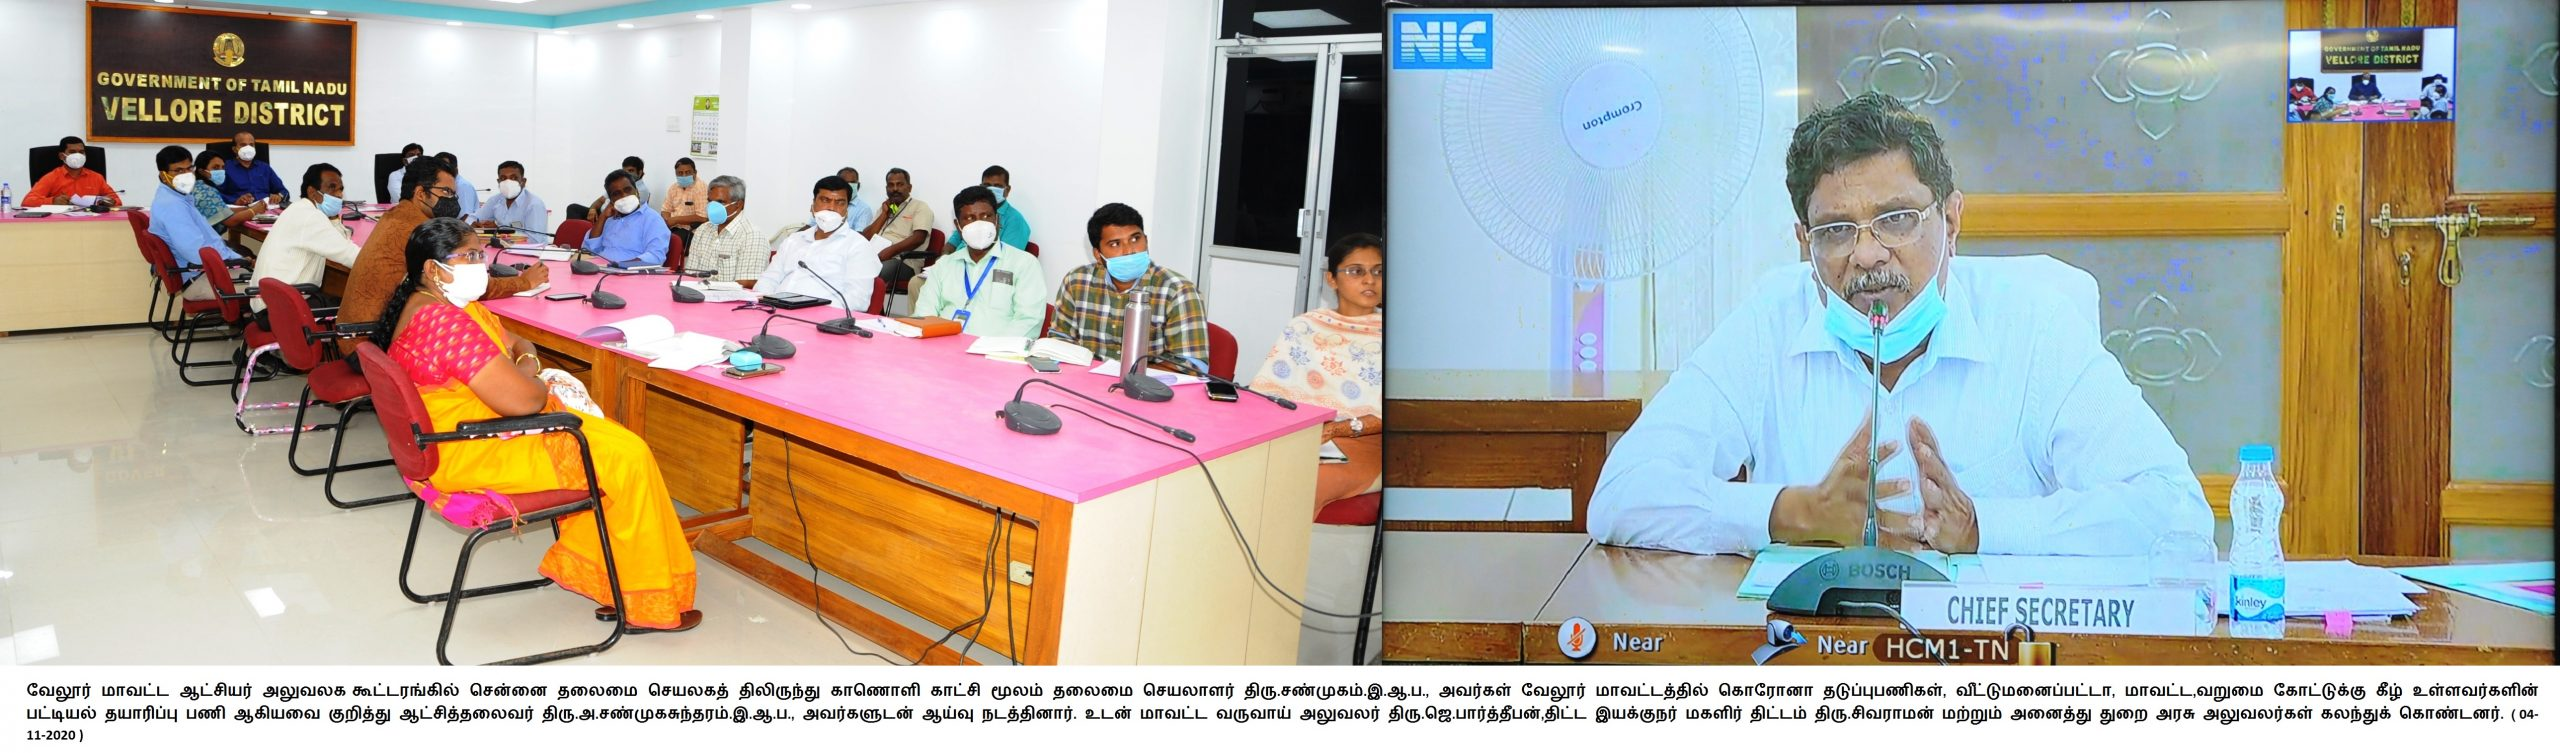 Chief Secretary Video Conferencing Meeting with Collector 04-11-2020